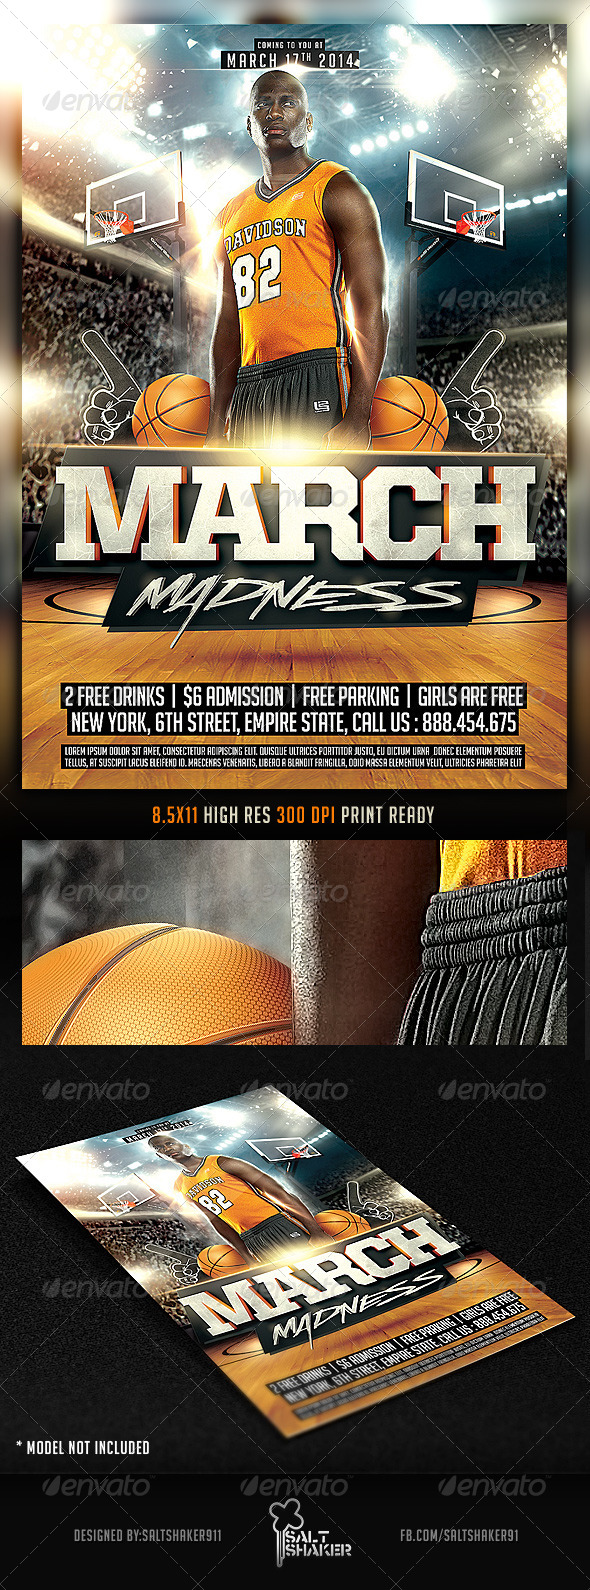 GraphicRiver Basketball March Madness Flyer 6694140